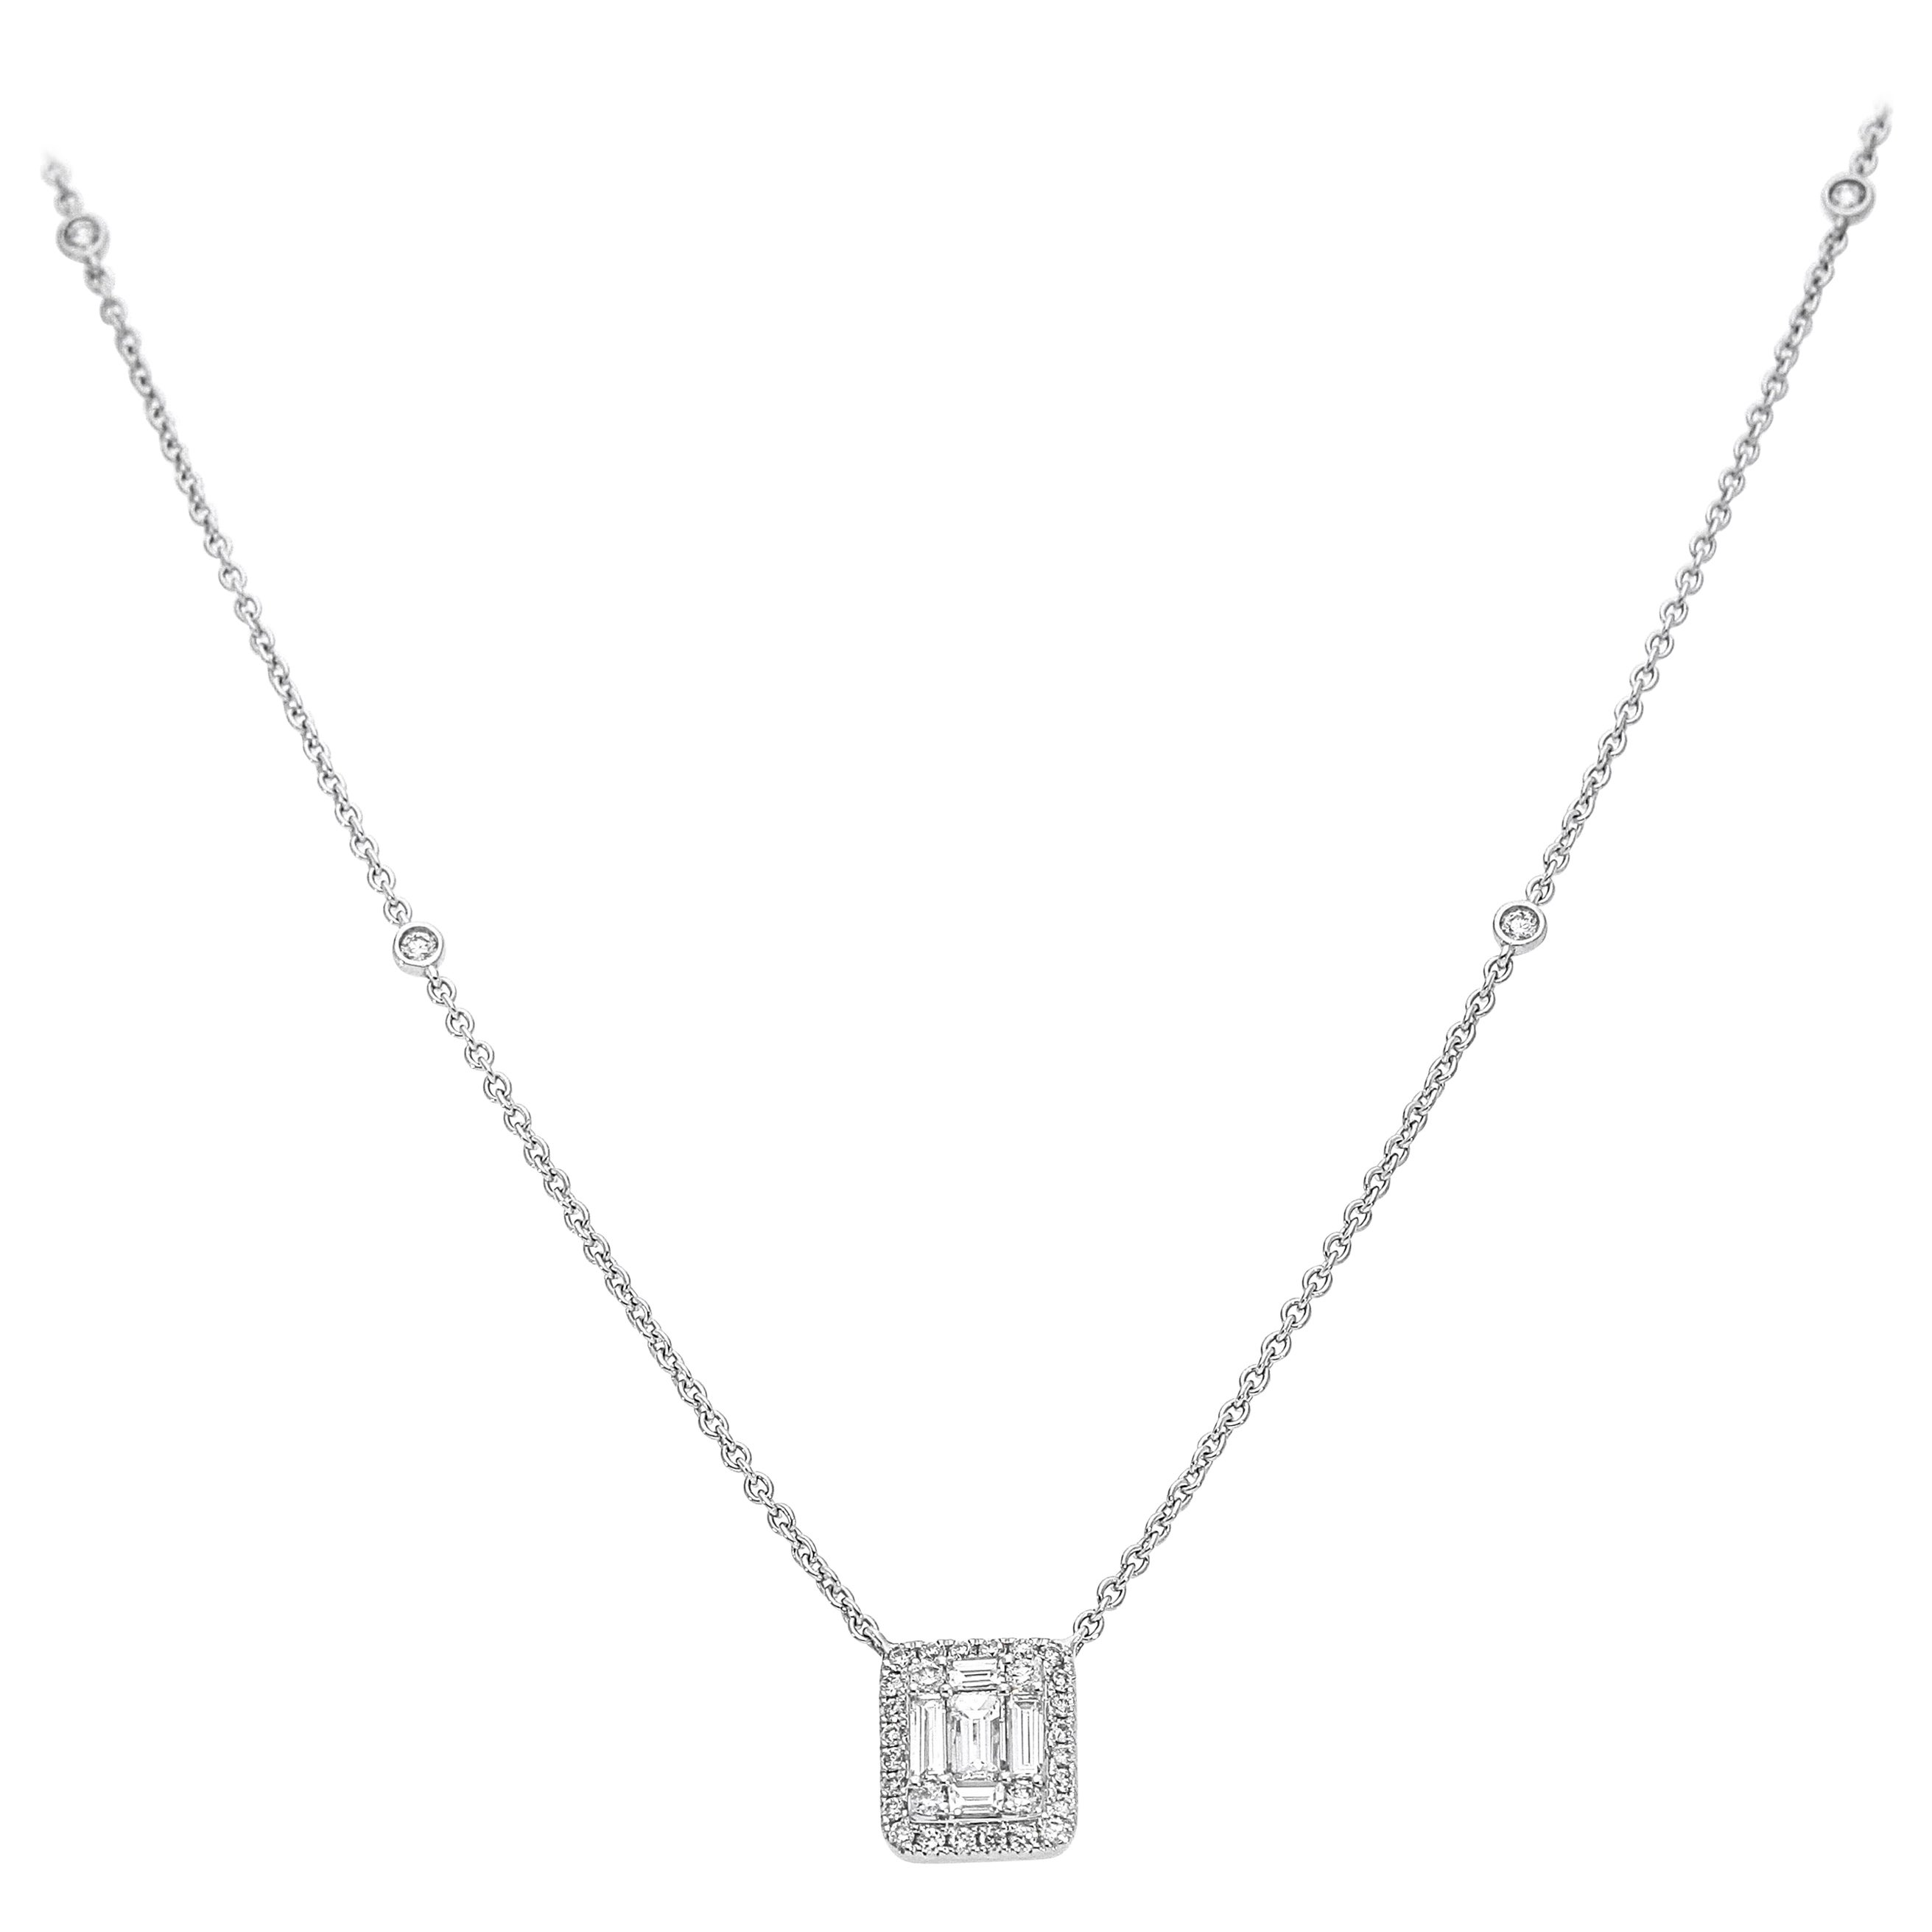 18 Karat White Gold Chain Necklace with Rectangular Diamonds Pendant